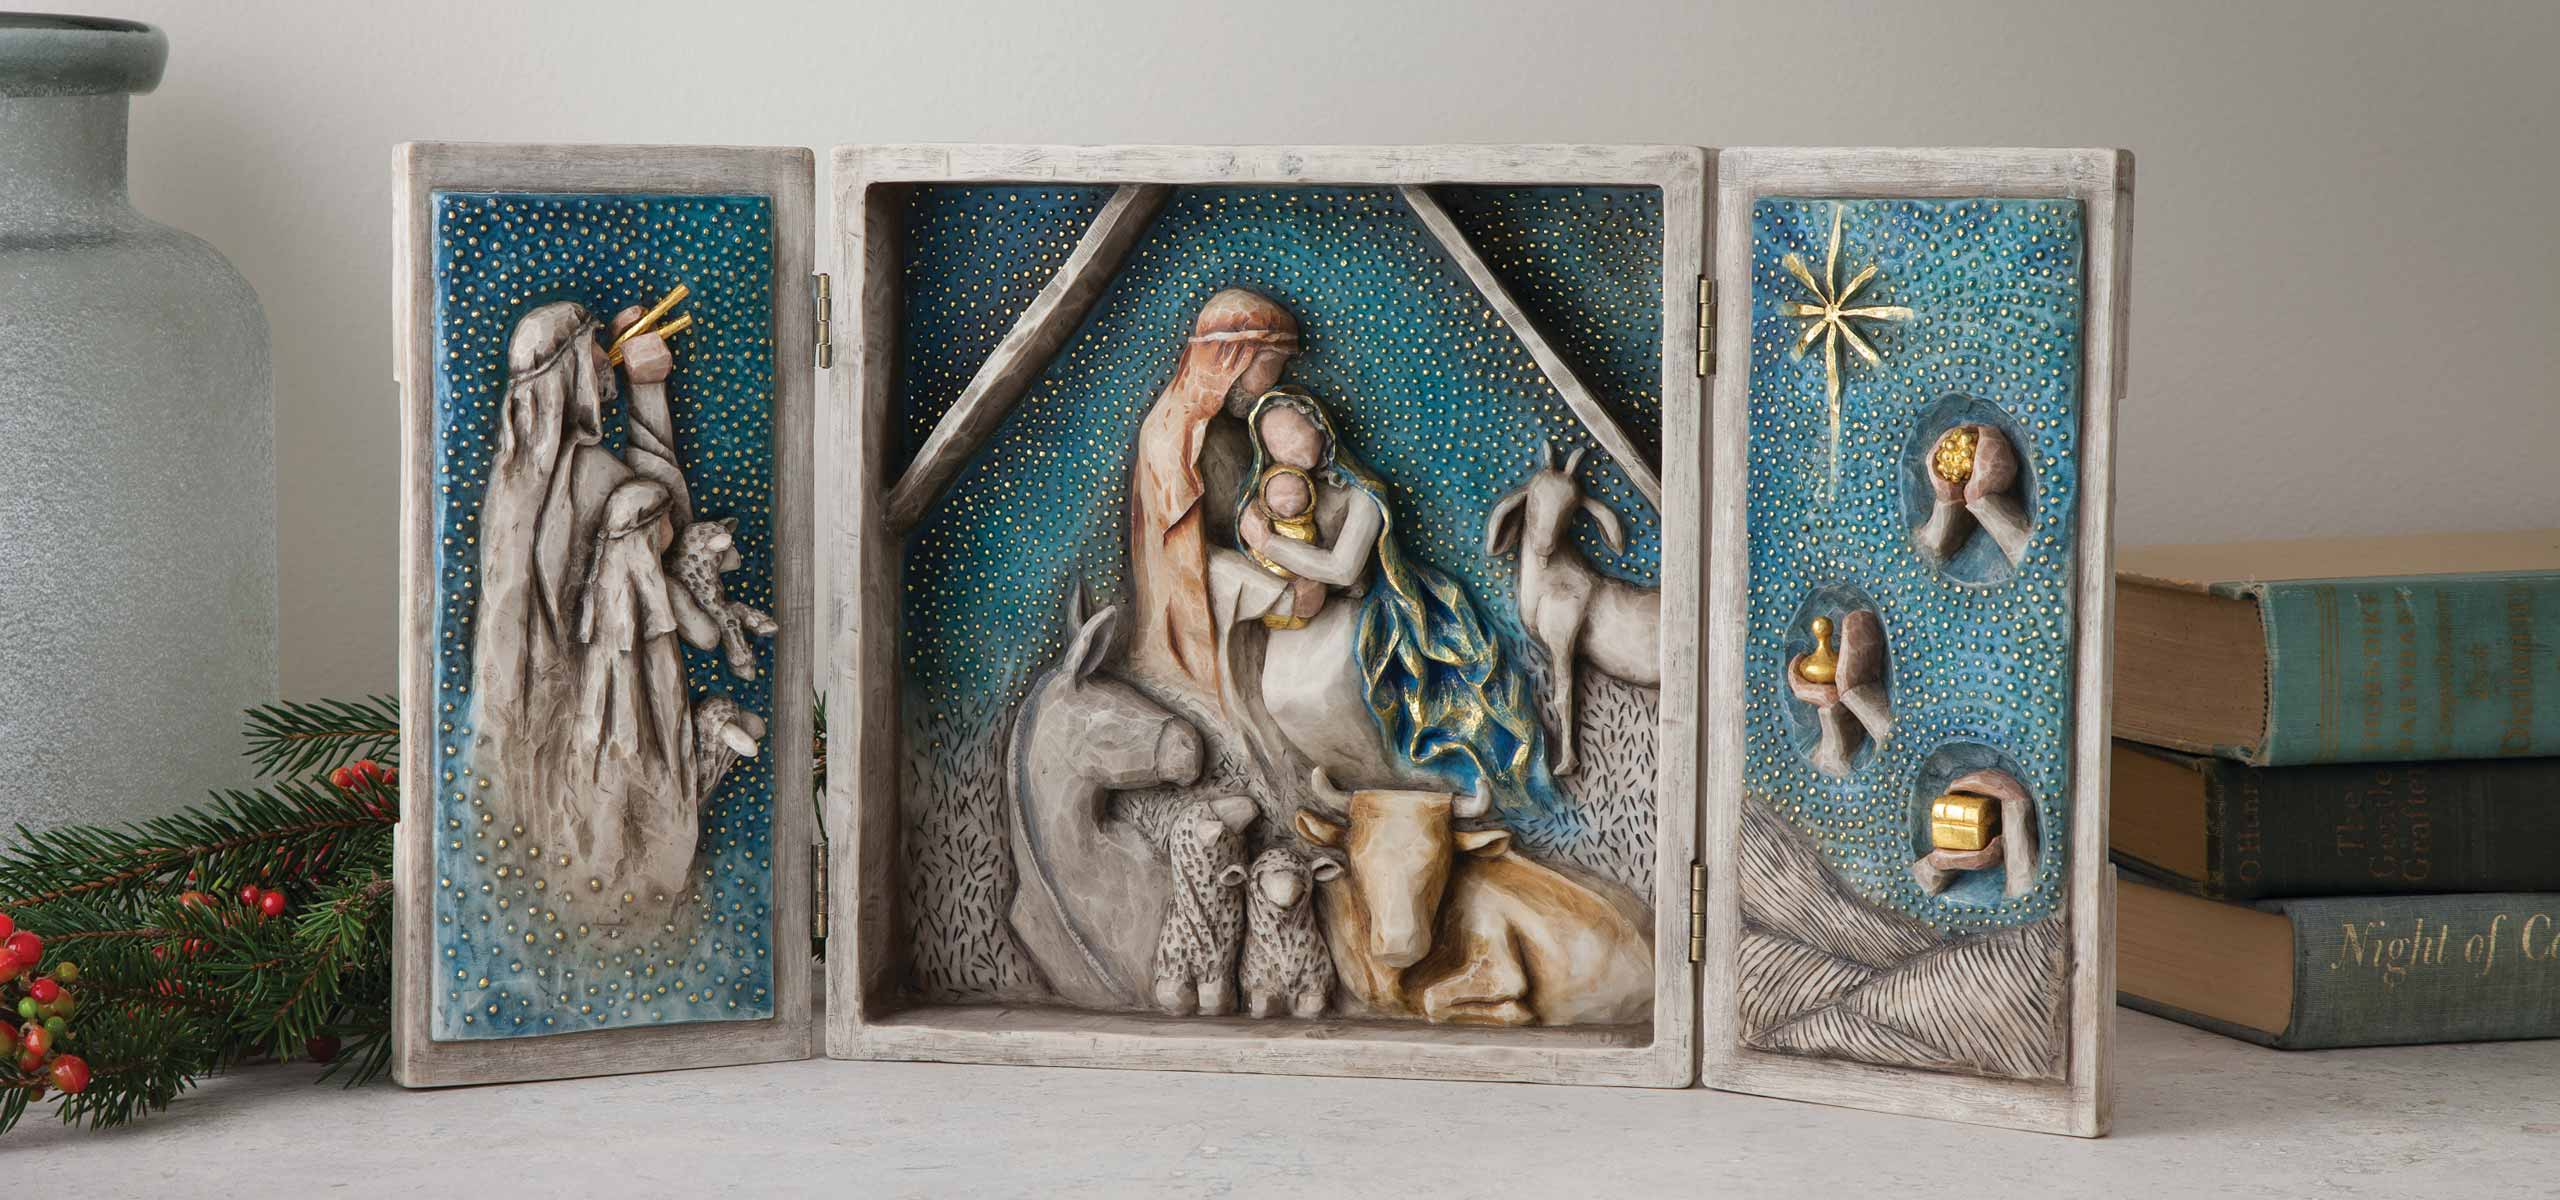 willow-tree-plp-starry-night-nativity.jpg